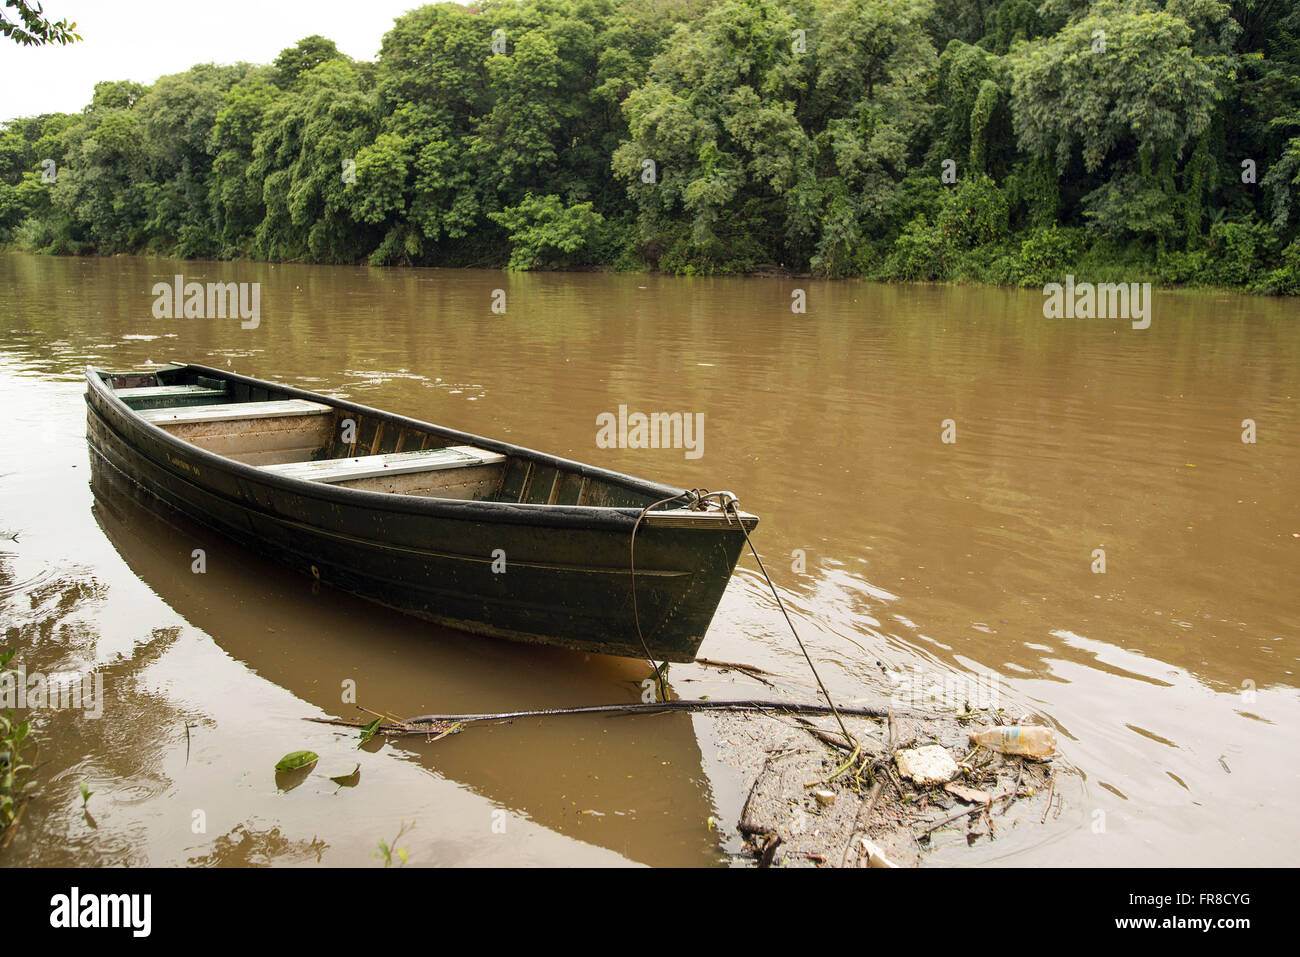 Canoe anchored in Rio Piracicaba polluted - Stock Image